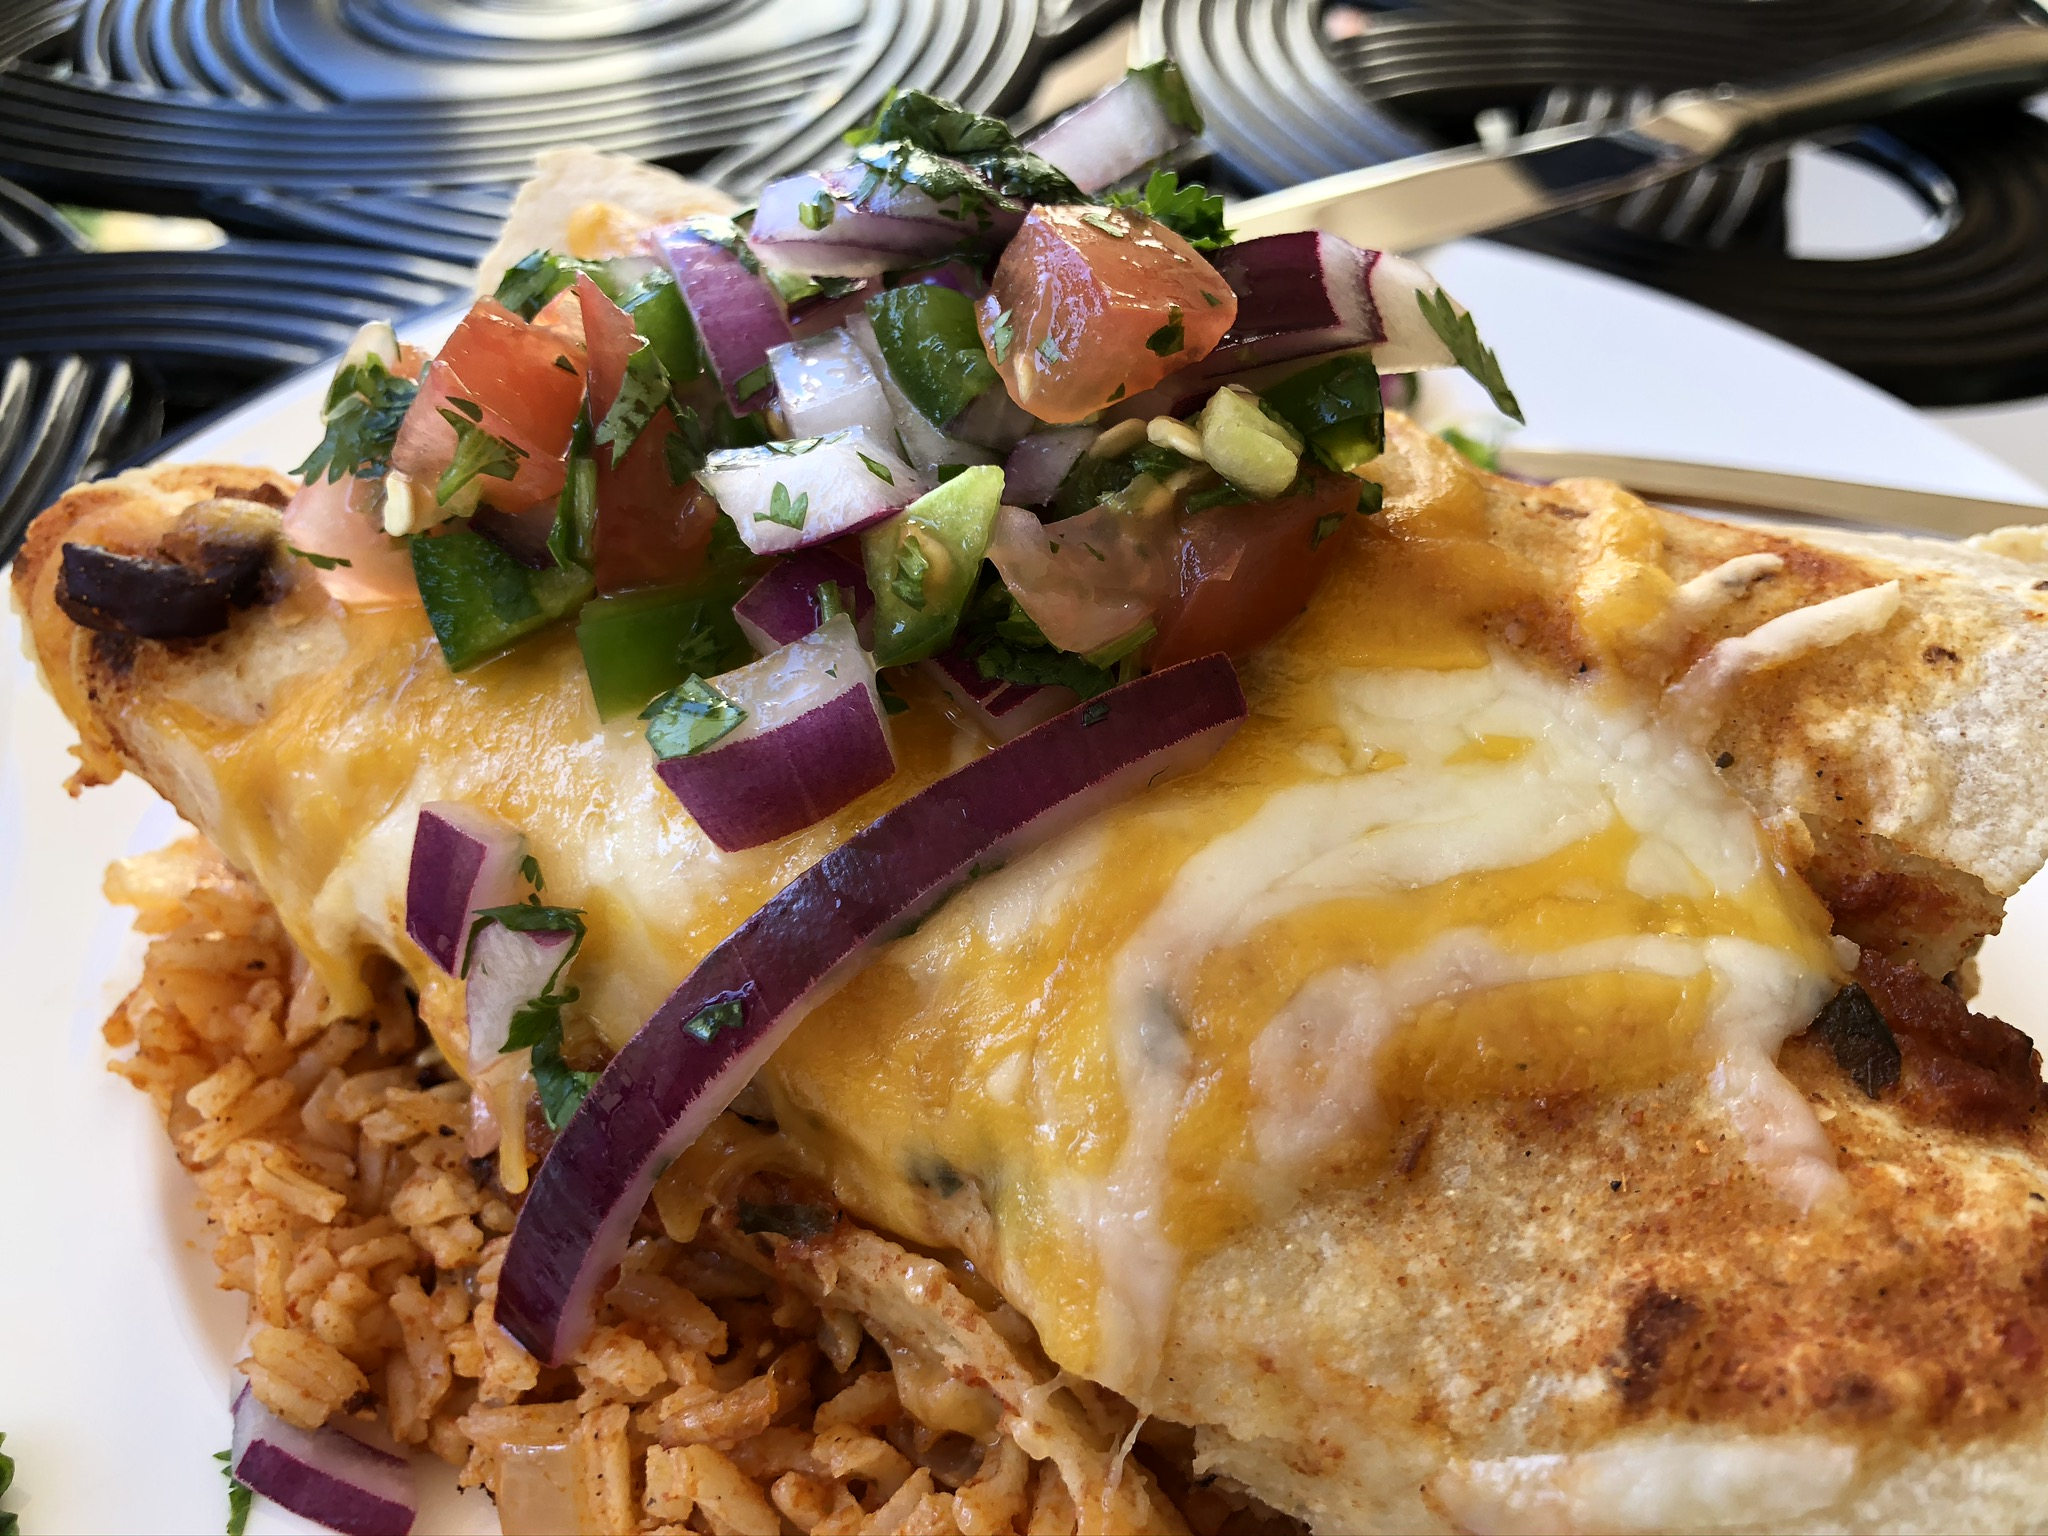 Aaron's Chicken Enchiladas - Closeup